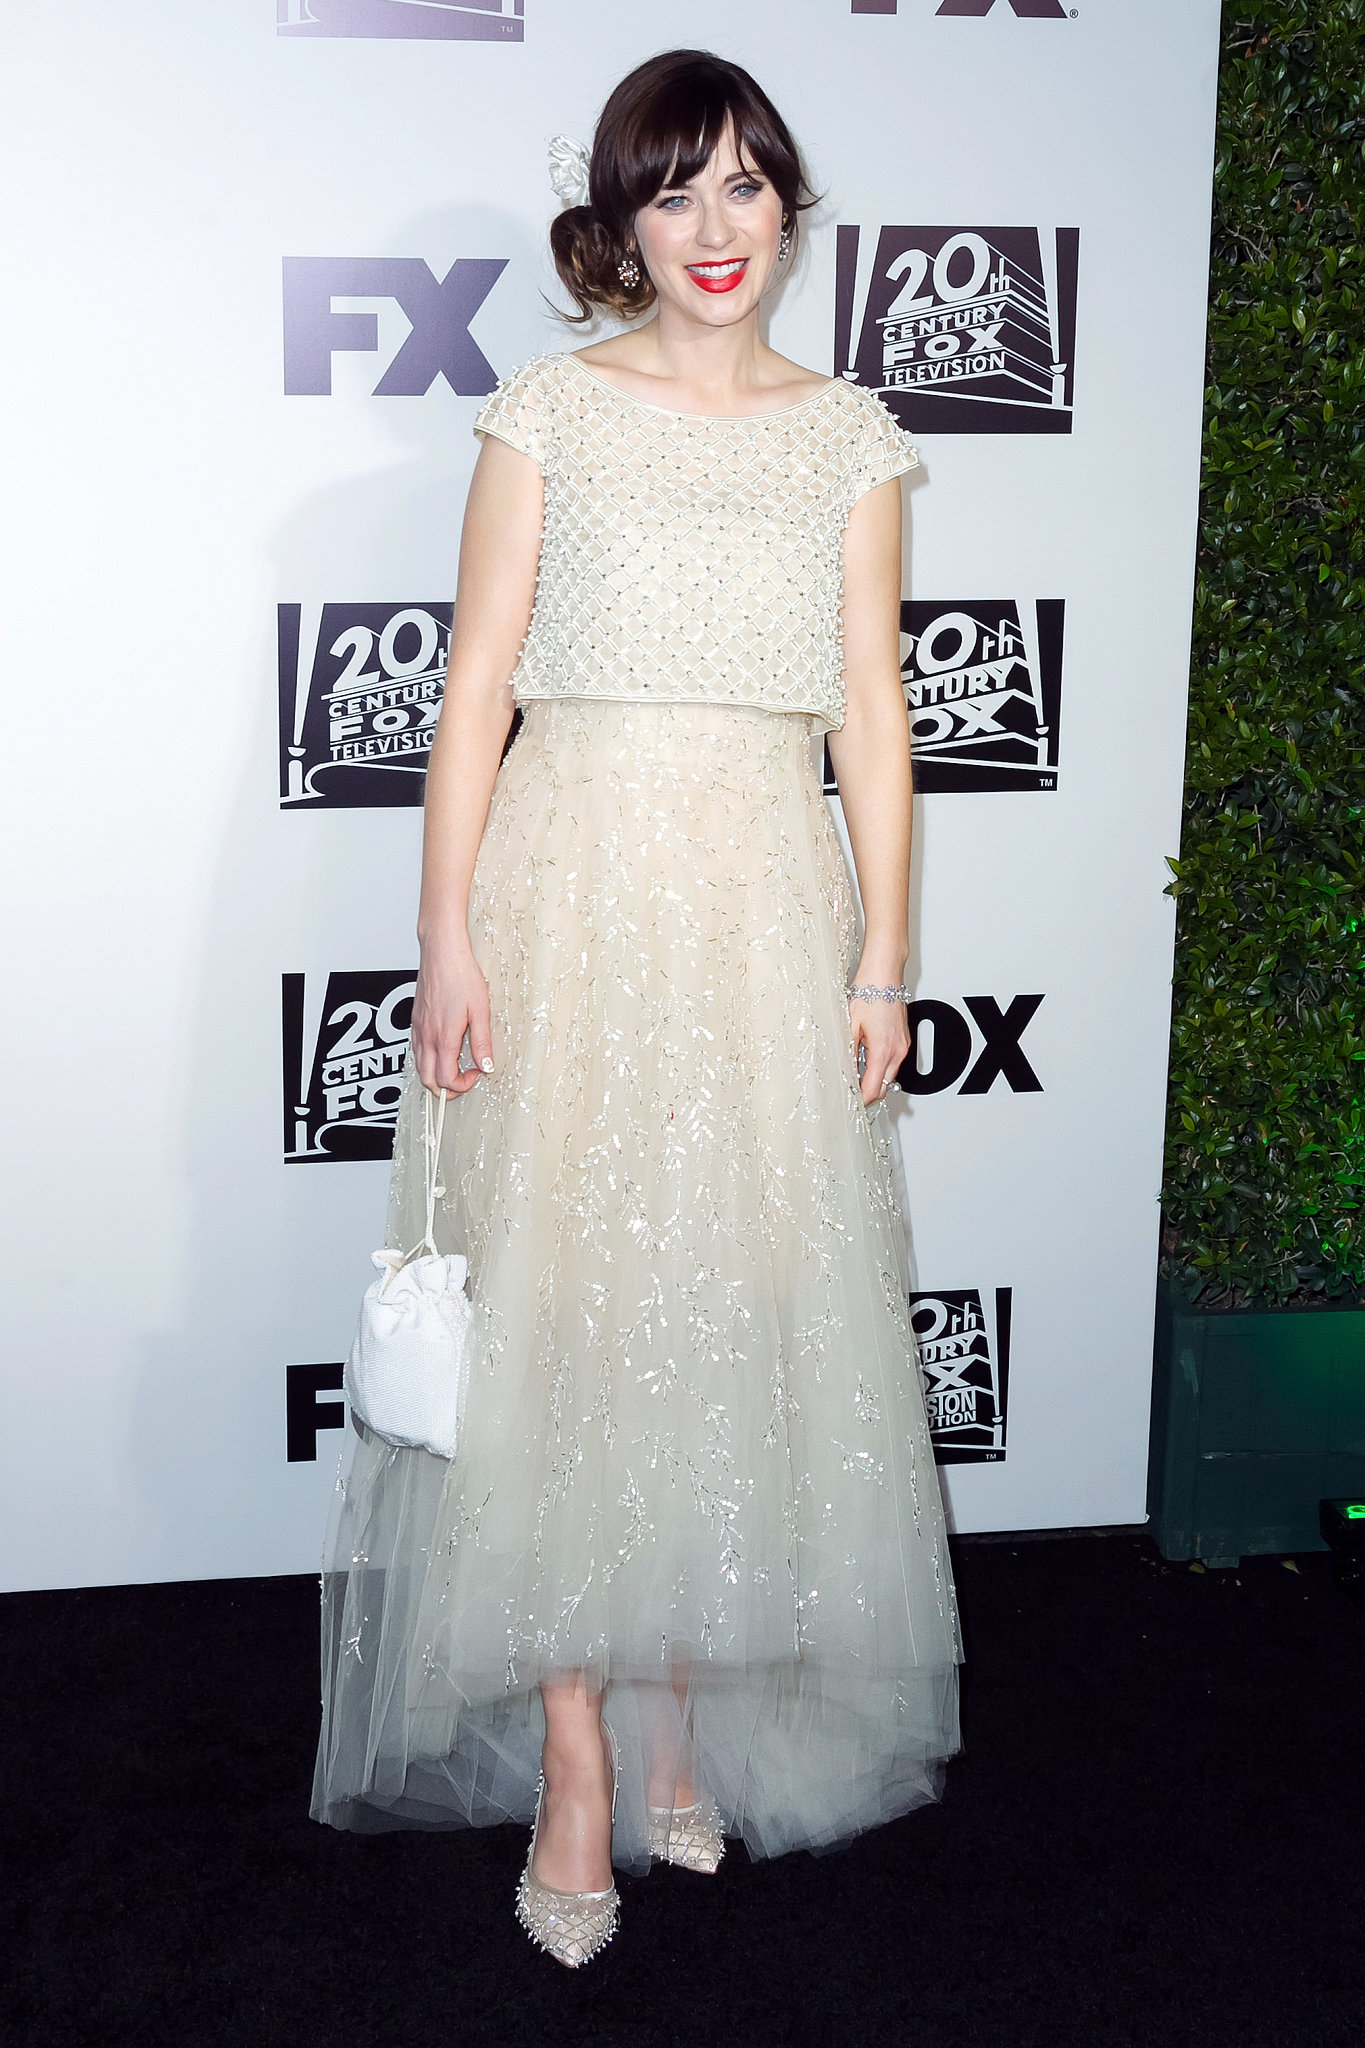 Zooey Deschanel flashed a smile.